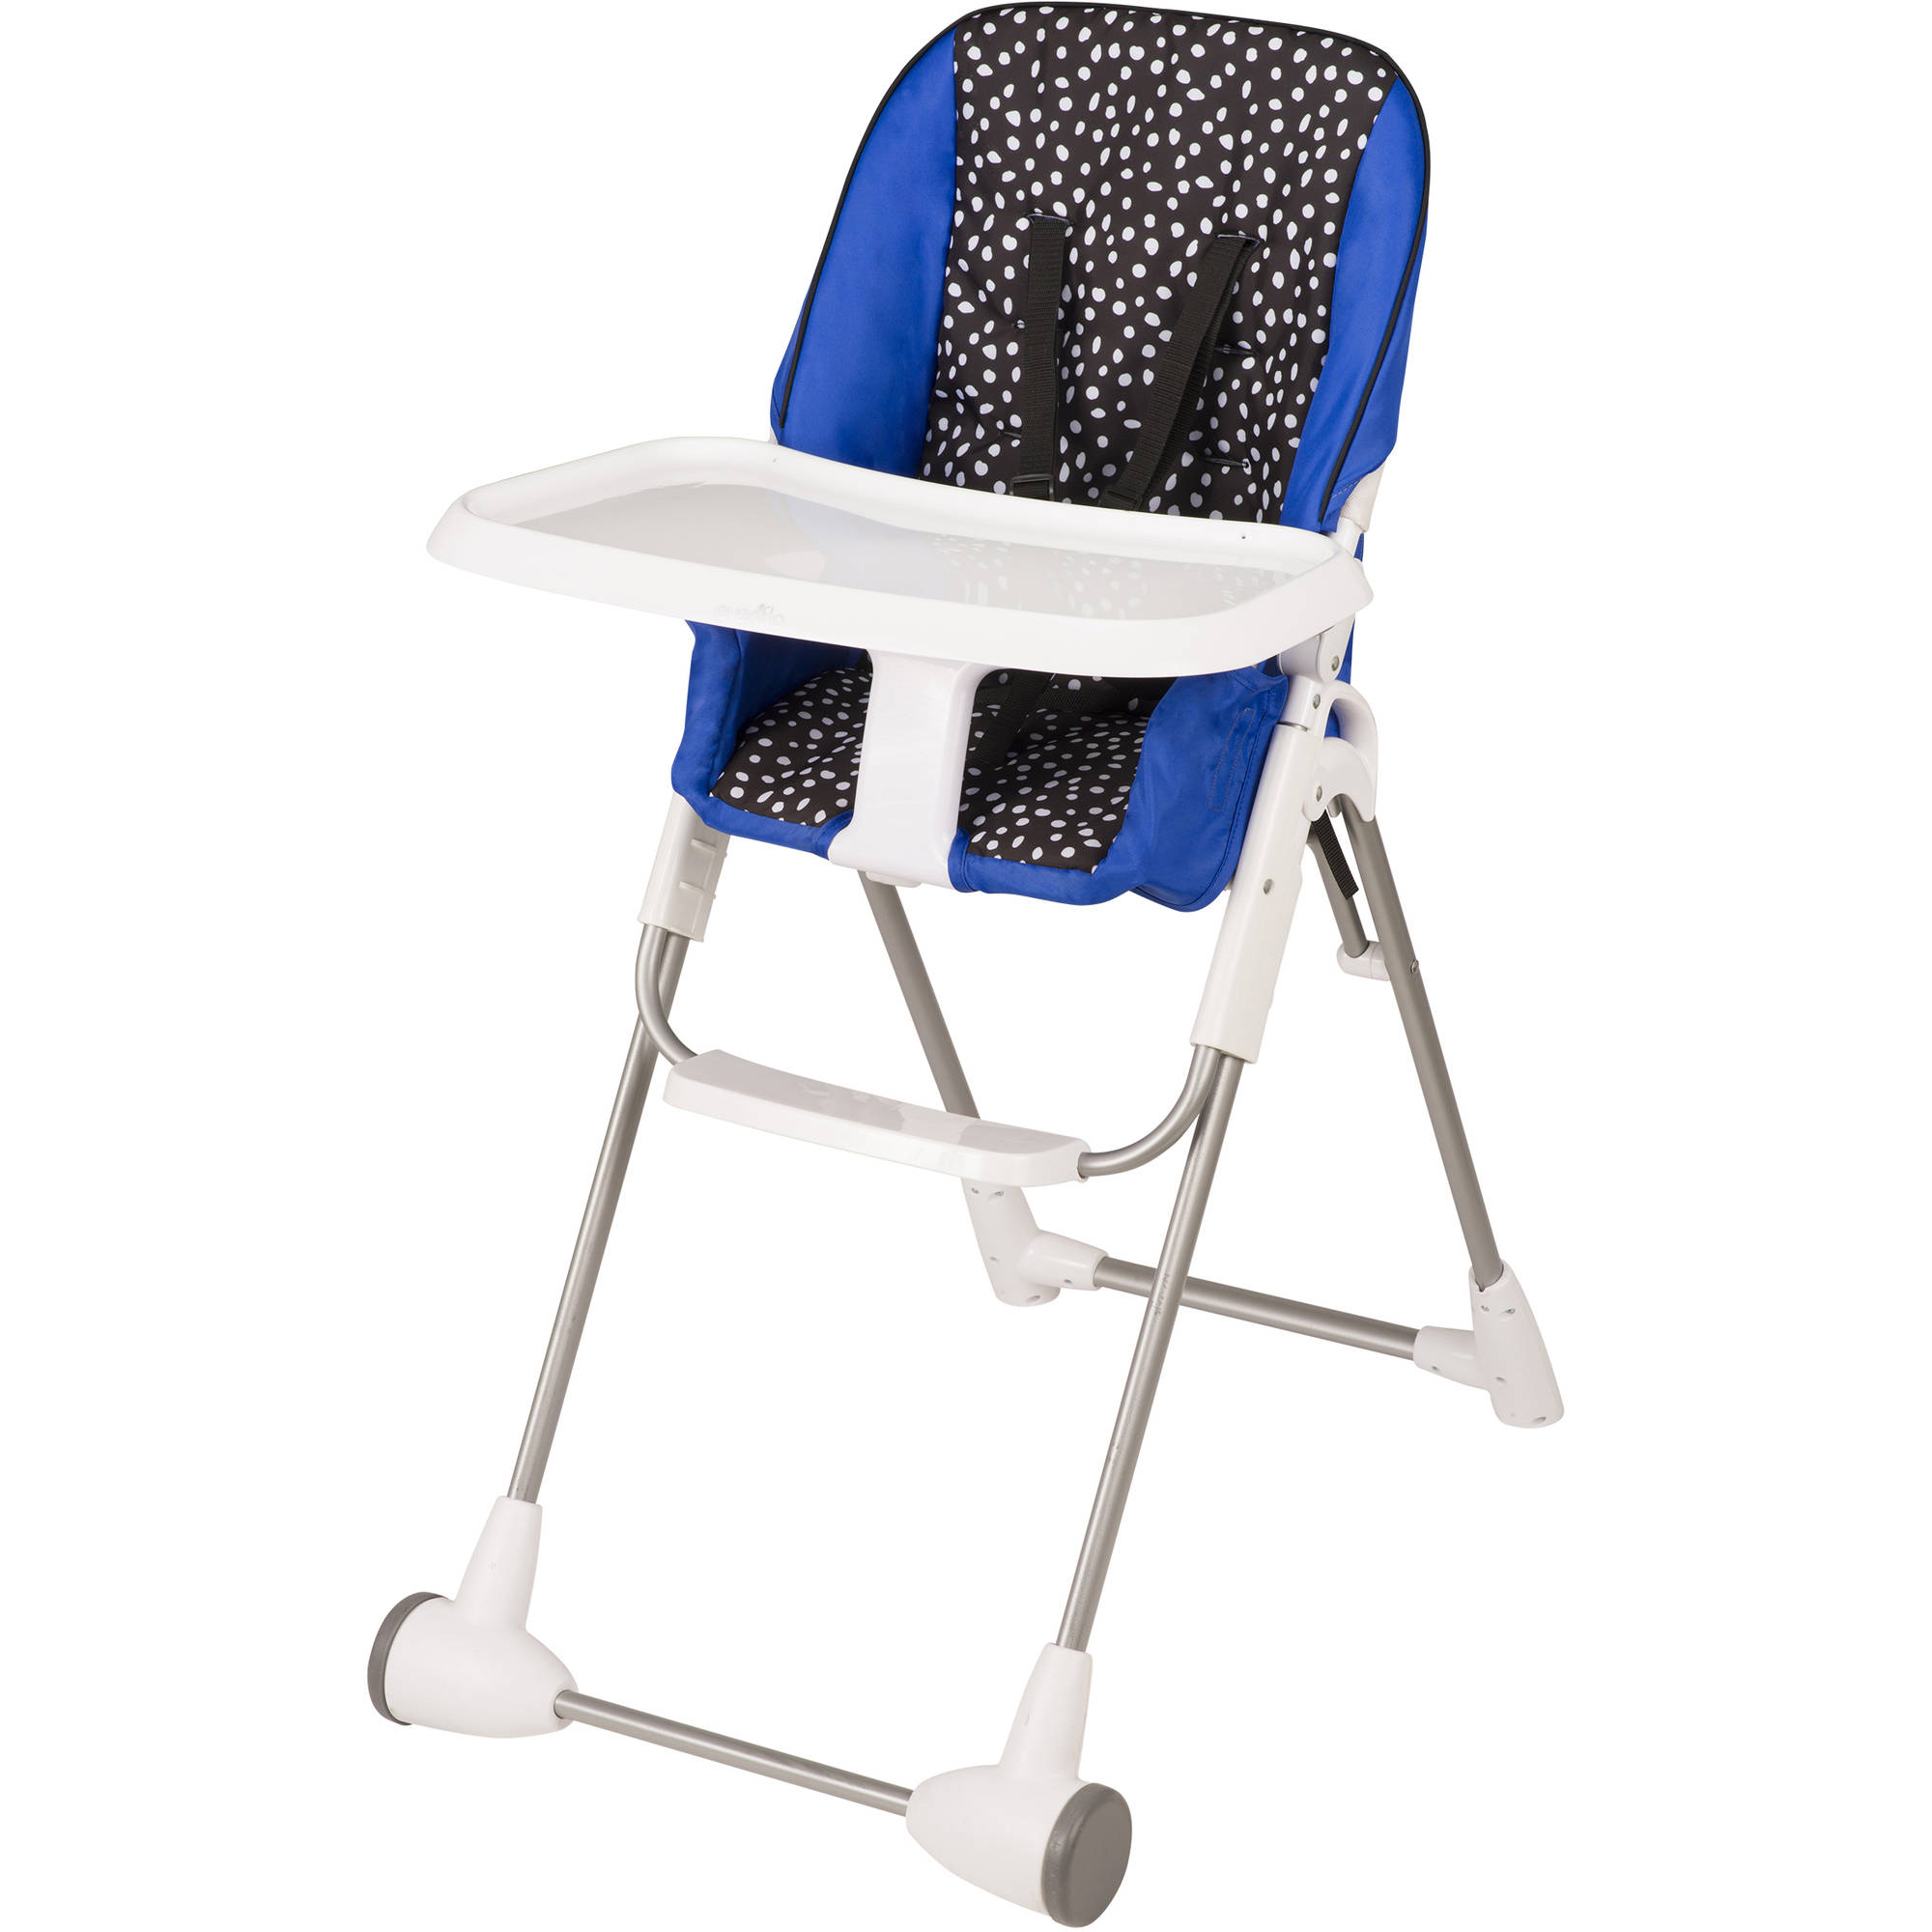 New Portable Infant Toddler Symmetry Flat Fold High Chair Hayden